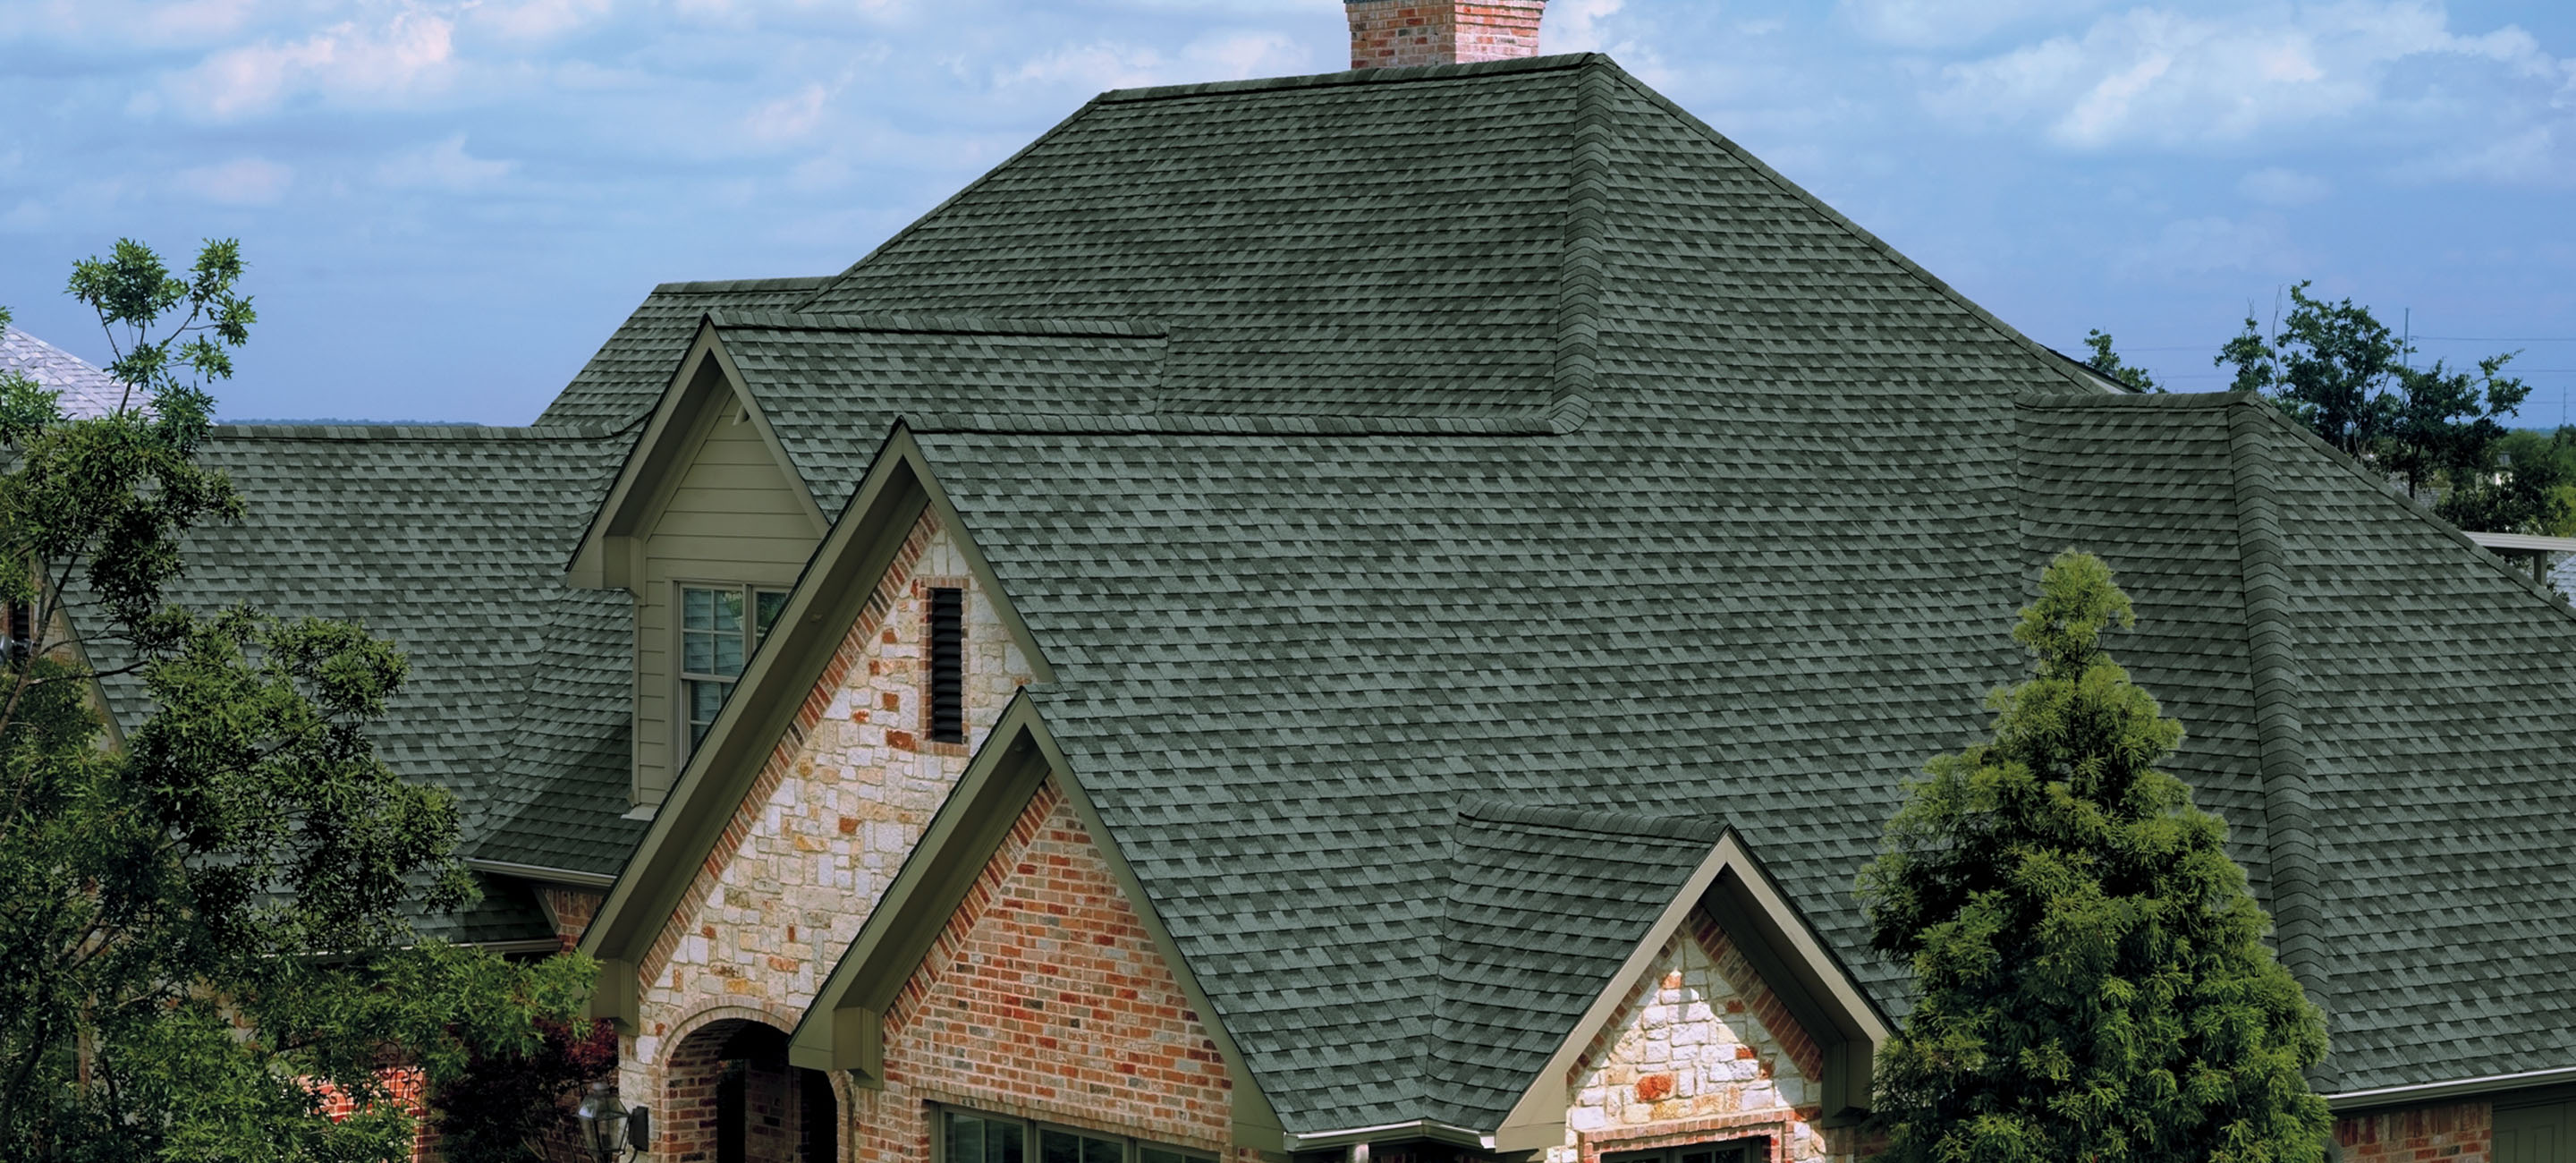 Showalter Roofing Service, Inc. - Naperville, Illinois reviews | Roofing at 25W048 Ramm Dr - Naperville IL